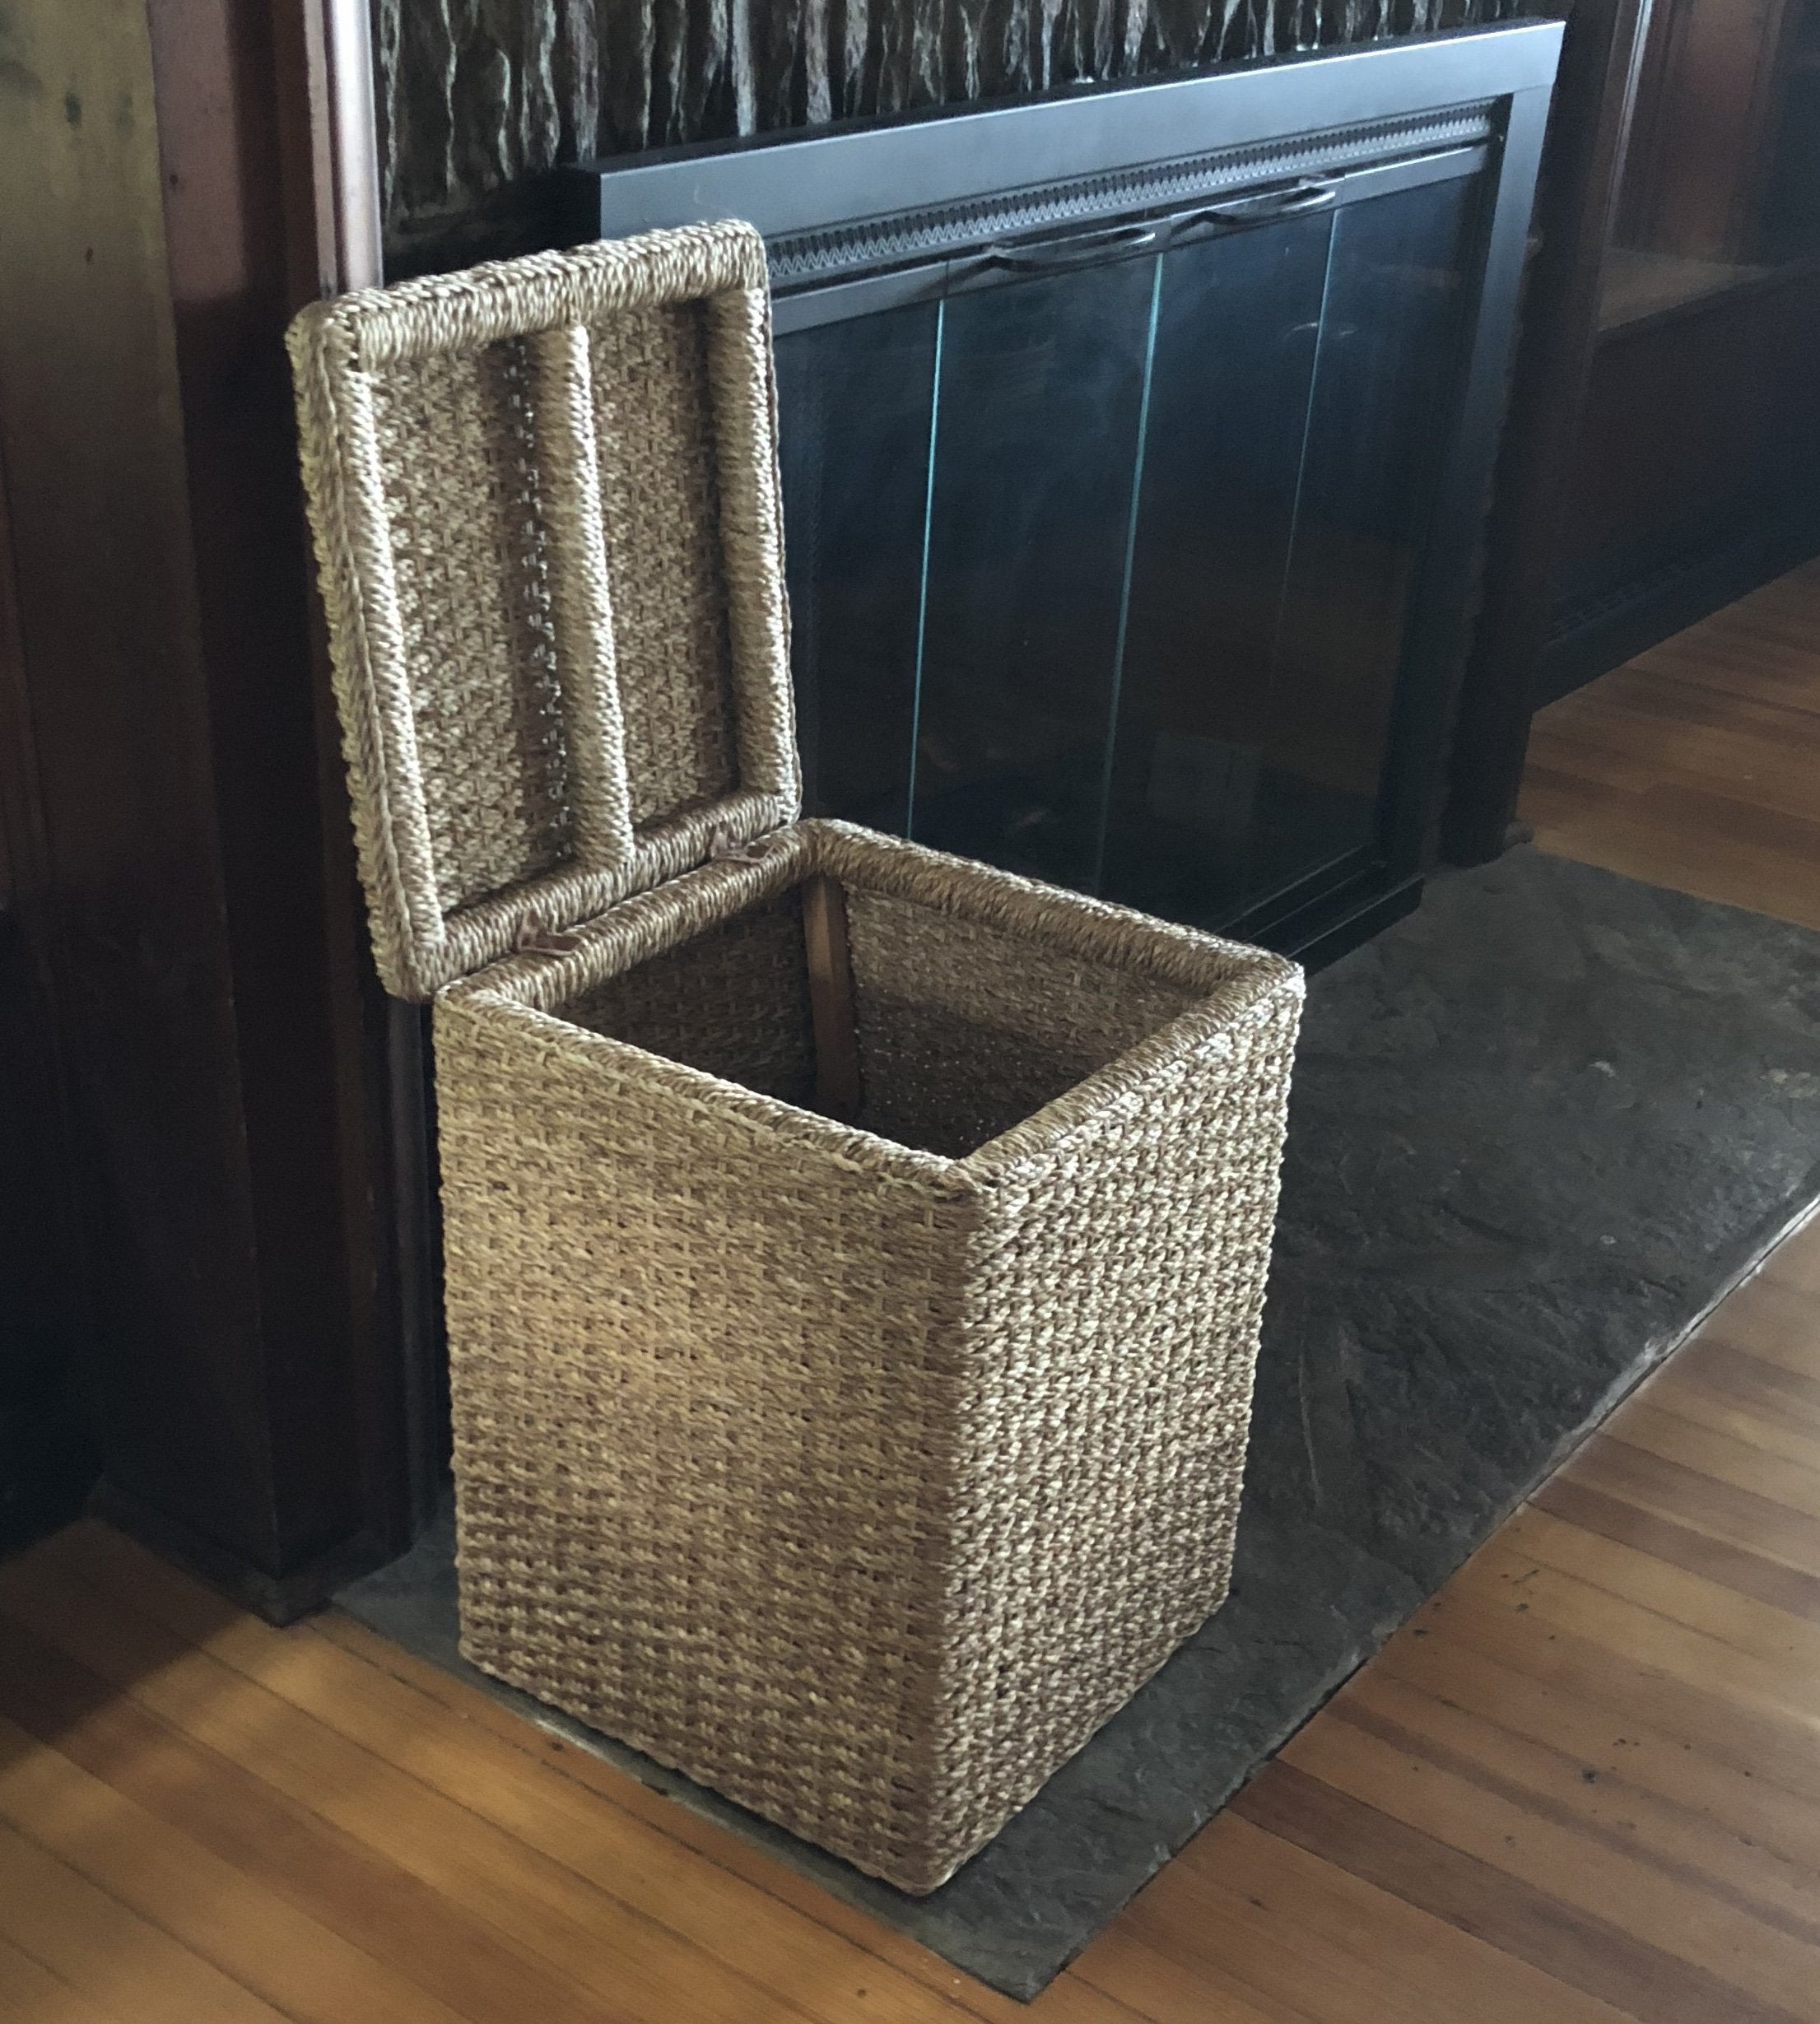 Banana Leaf Storage Hamper